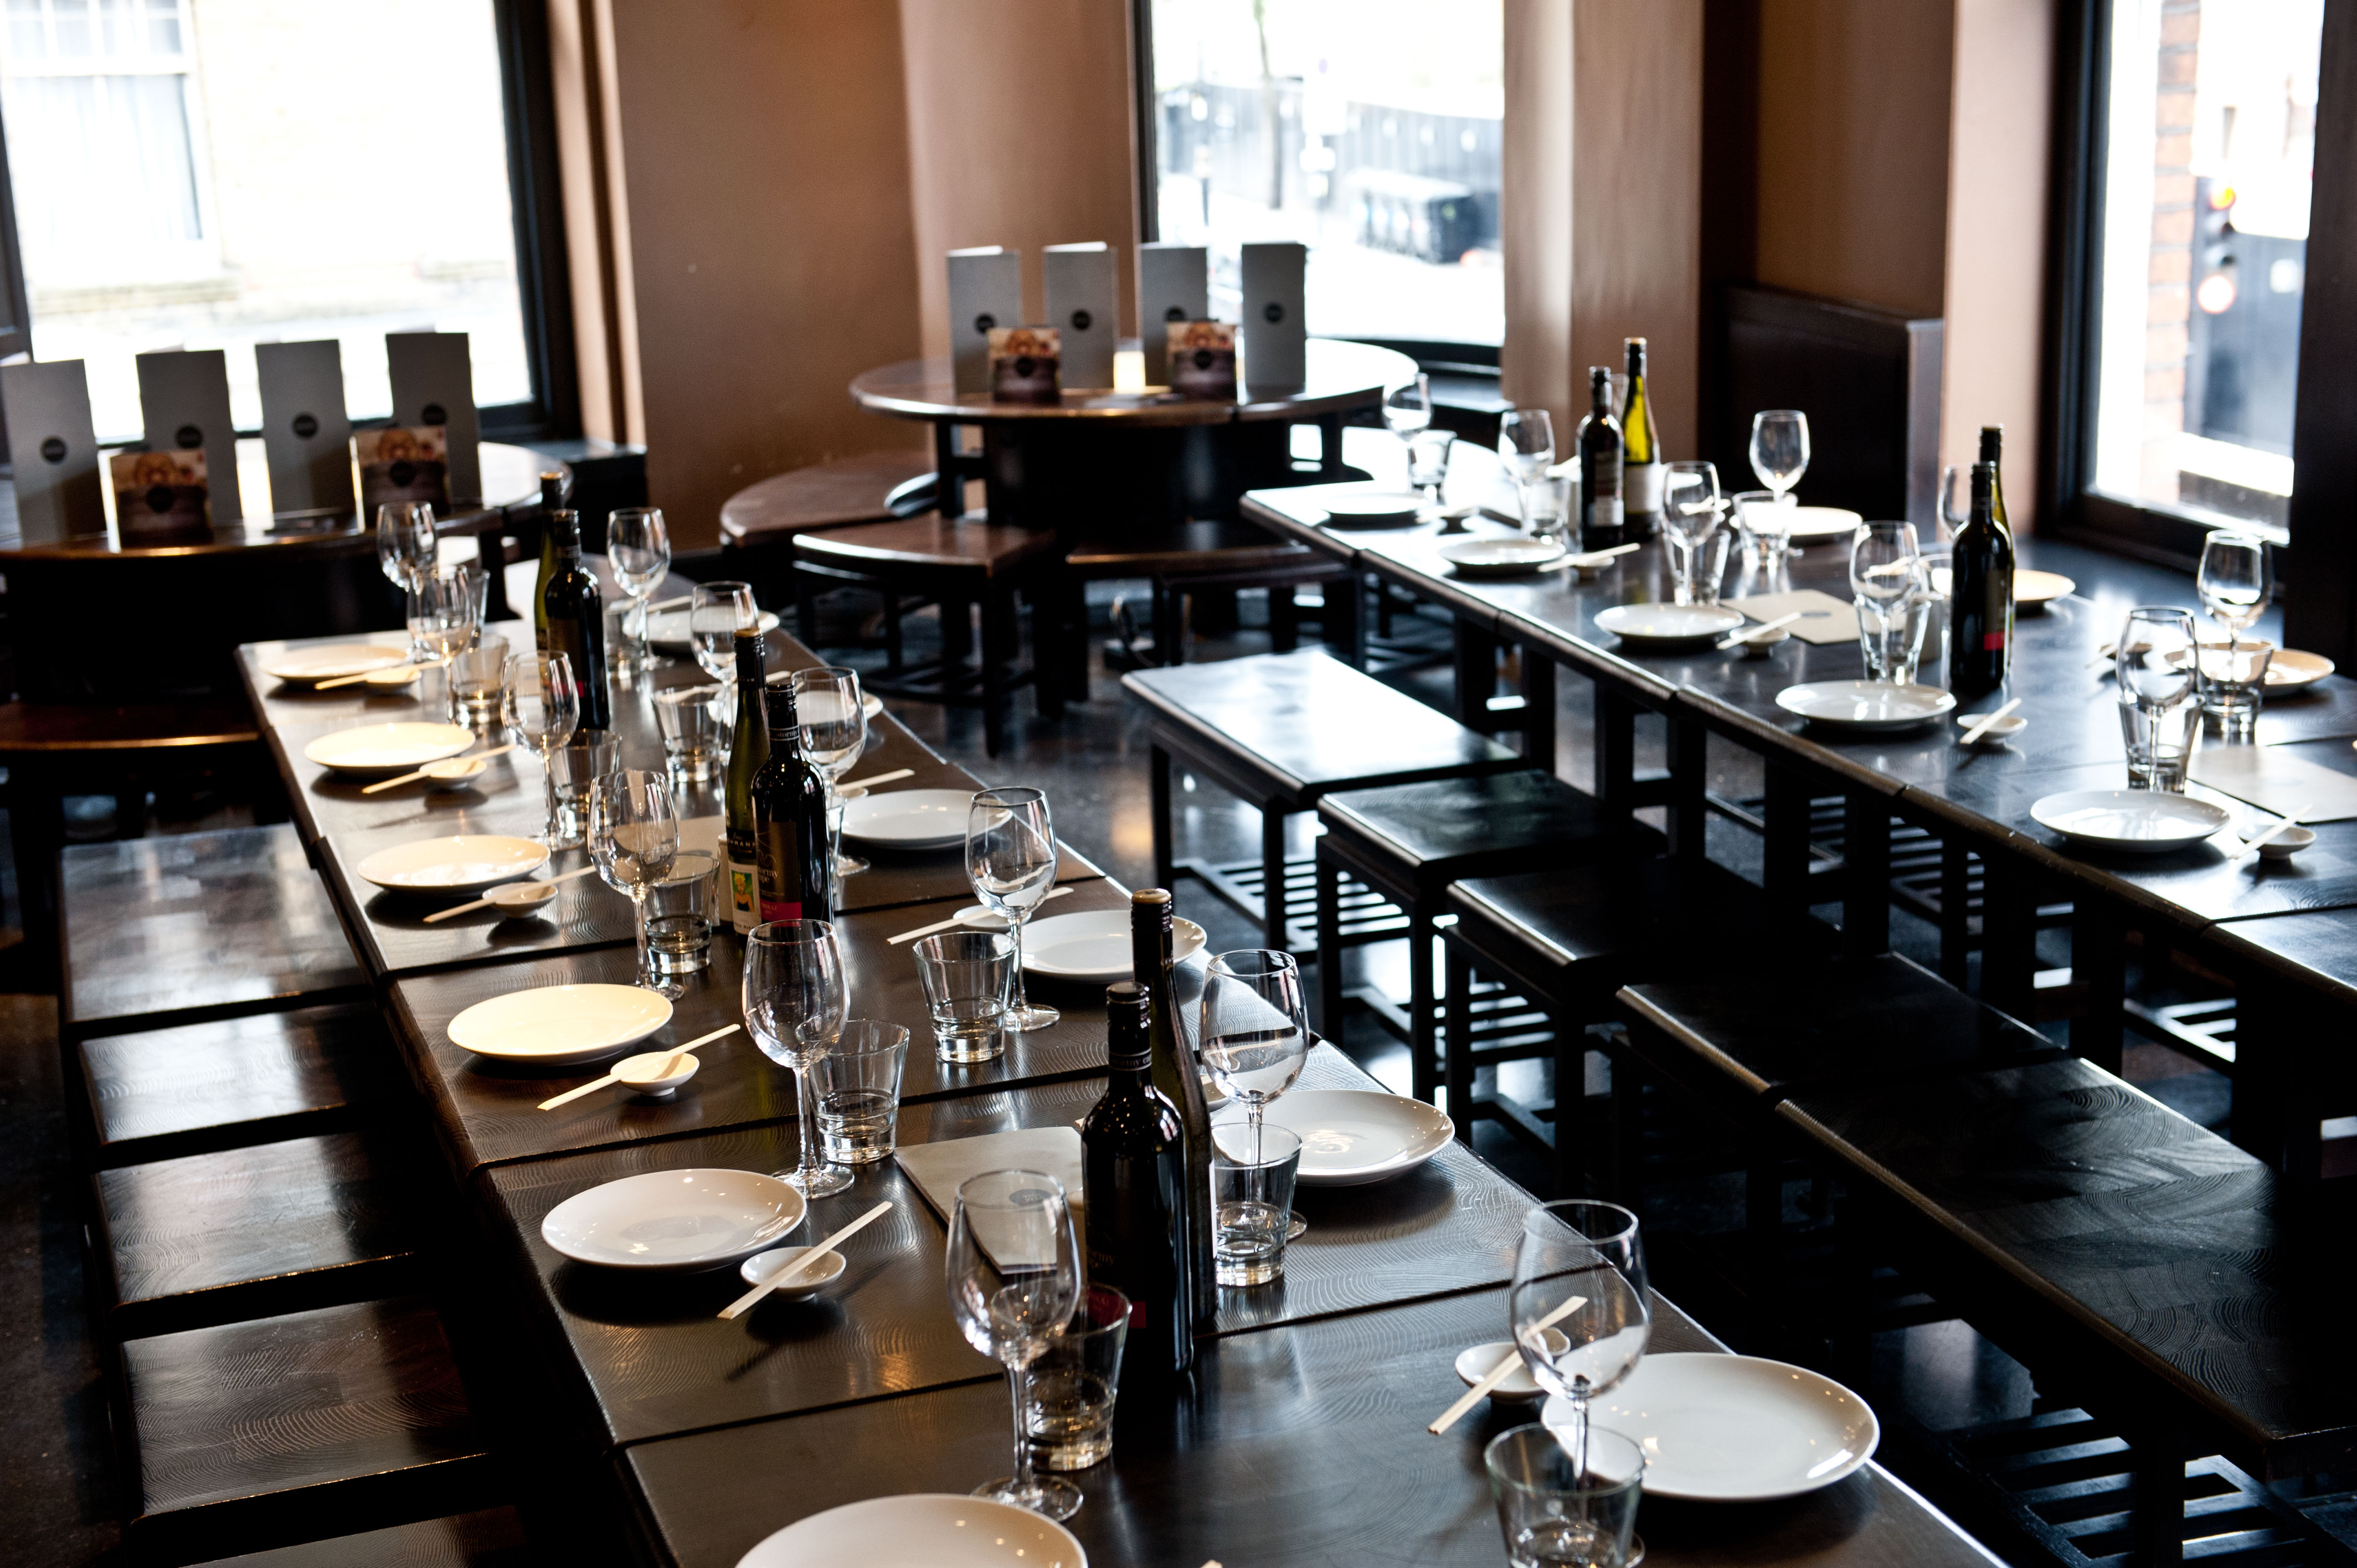 Reserve a table at Ping Pong - St Christopher's Place